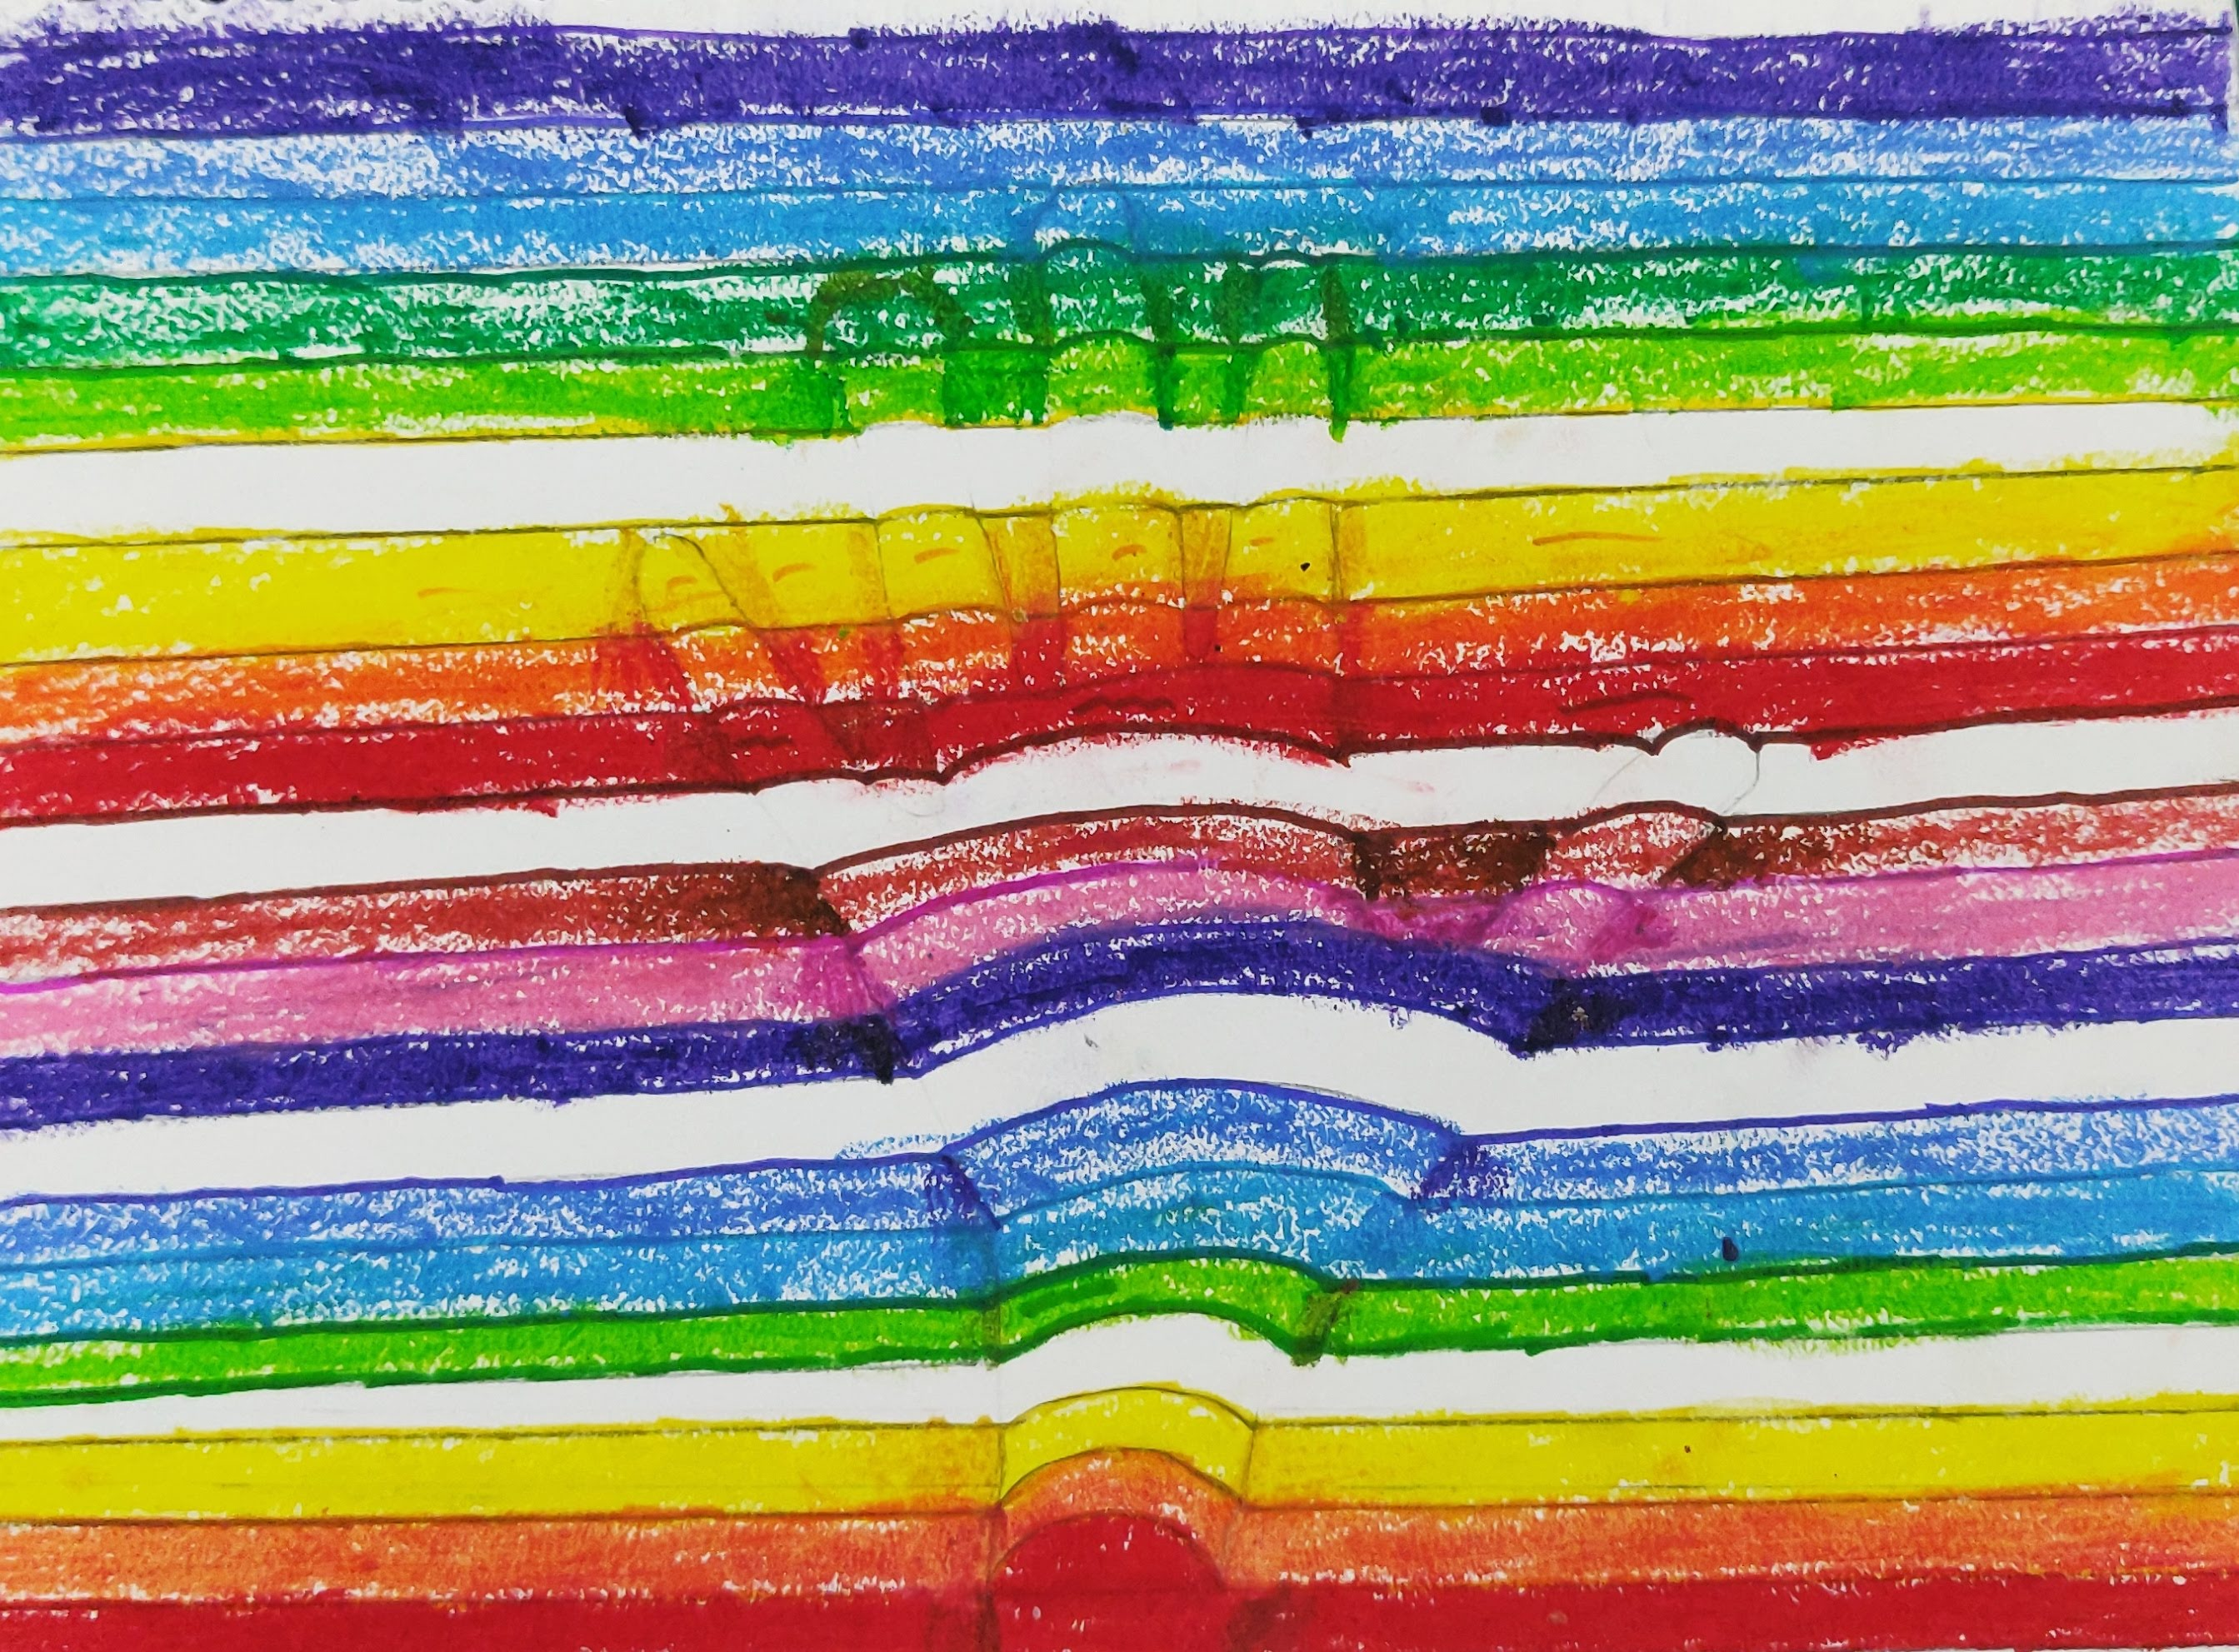 How to create a 3D Illusion with Oil Pastels